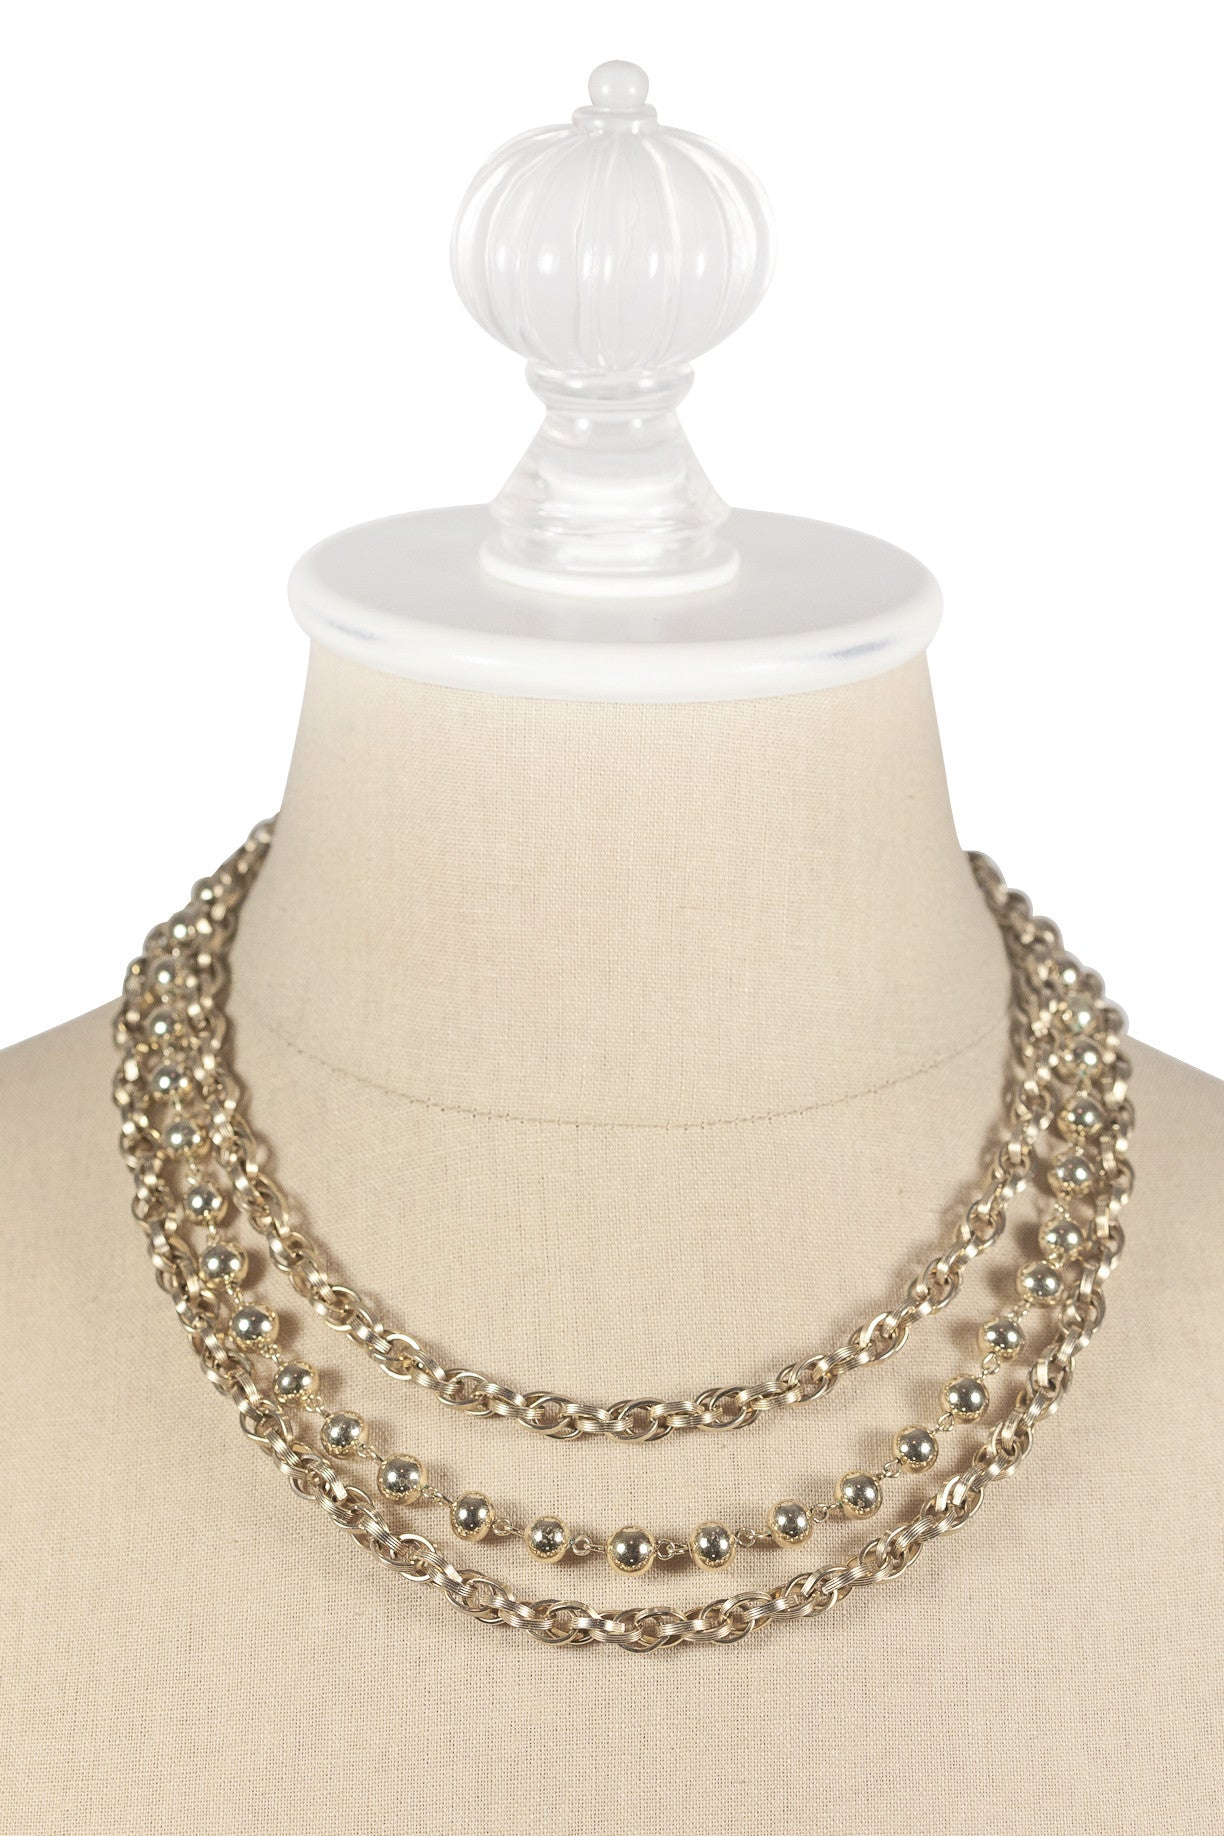 60's__Marvella__Chunky Ball Necklace